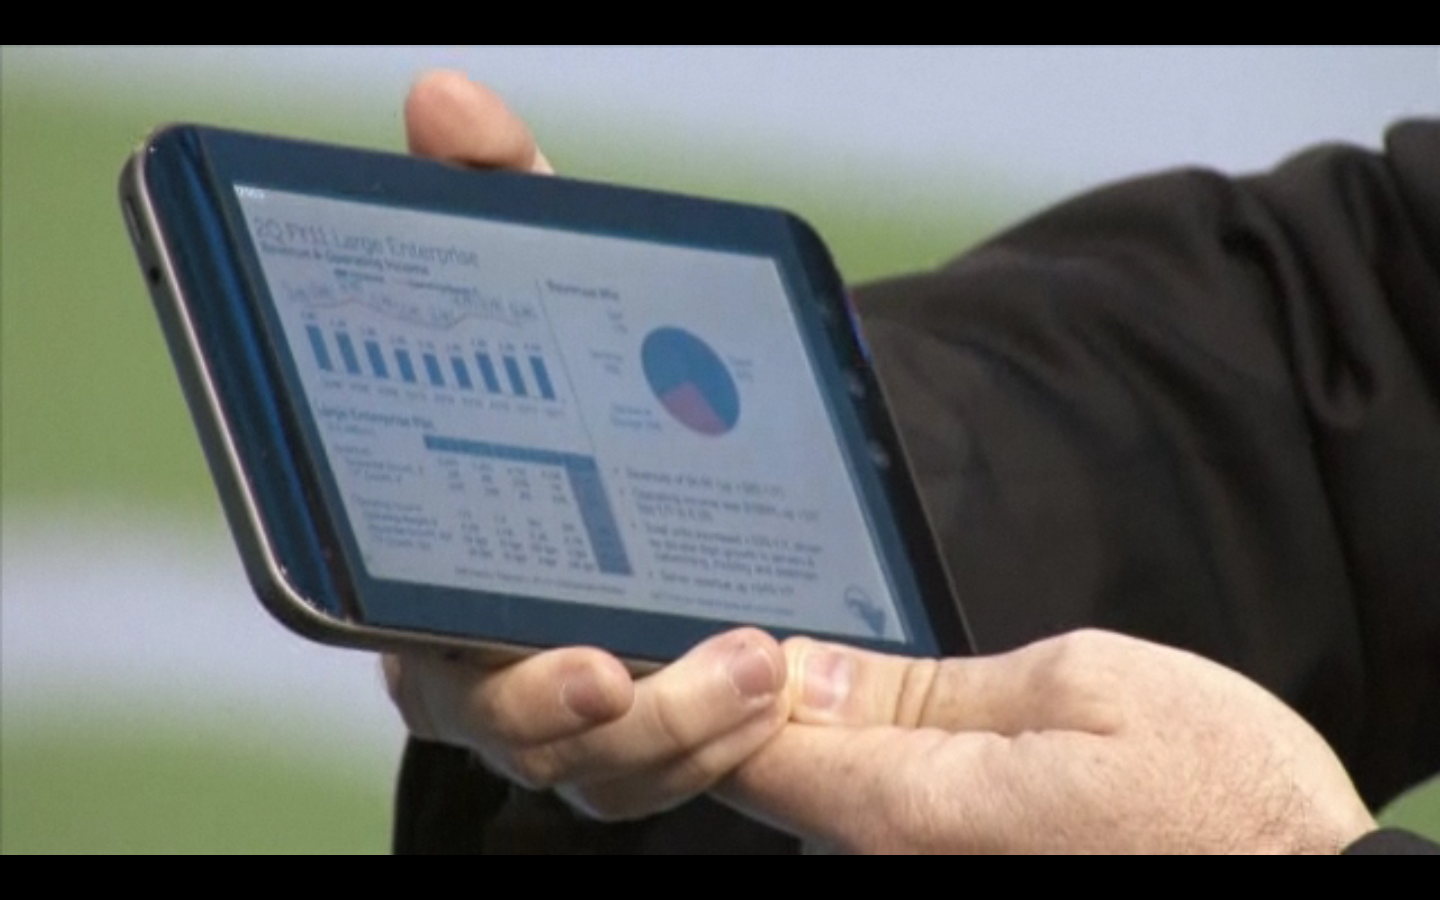 Now this is remarkable. An amazing interactive (newspaper) iPhone ad [video]